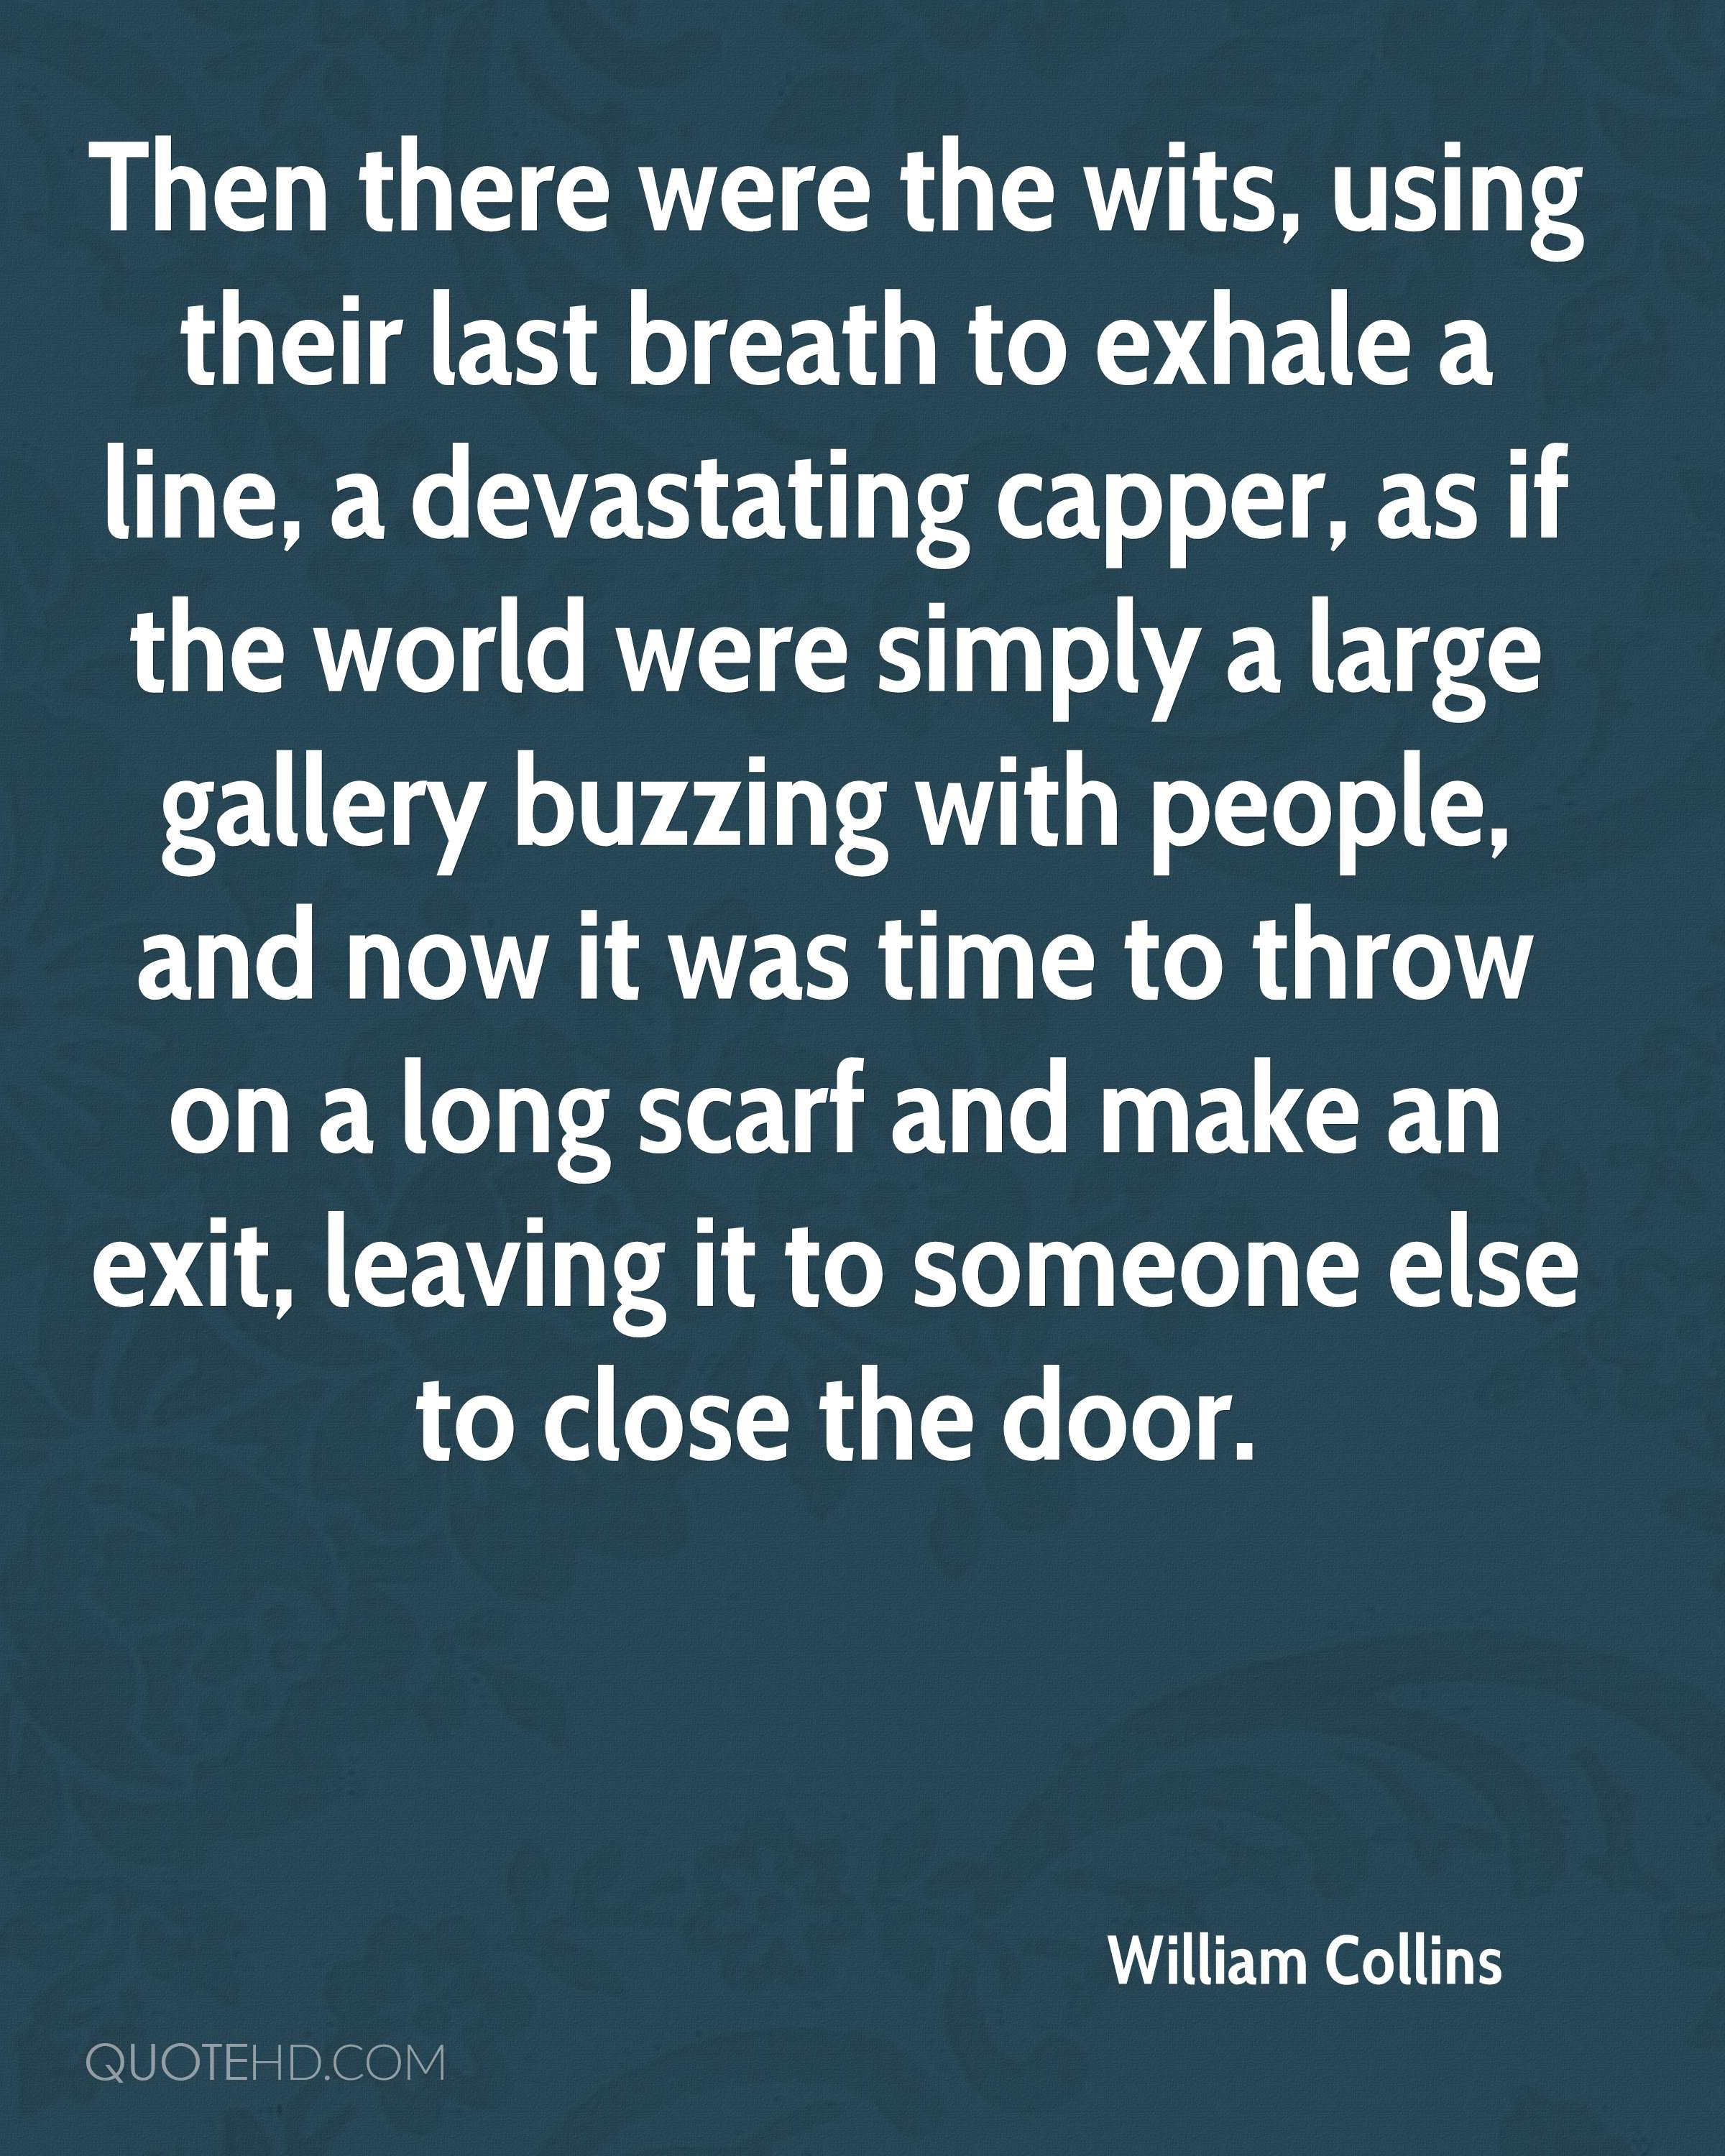 Then there were the wits, using their last breath to exhale a line, a devastating capper, as if the world were simply a large gallery buzzing with people, and now it was time to throw on a long scarf and make an exit, leaving it to someone else to close the door.